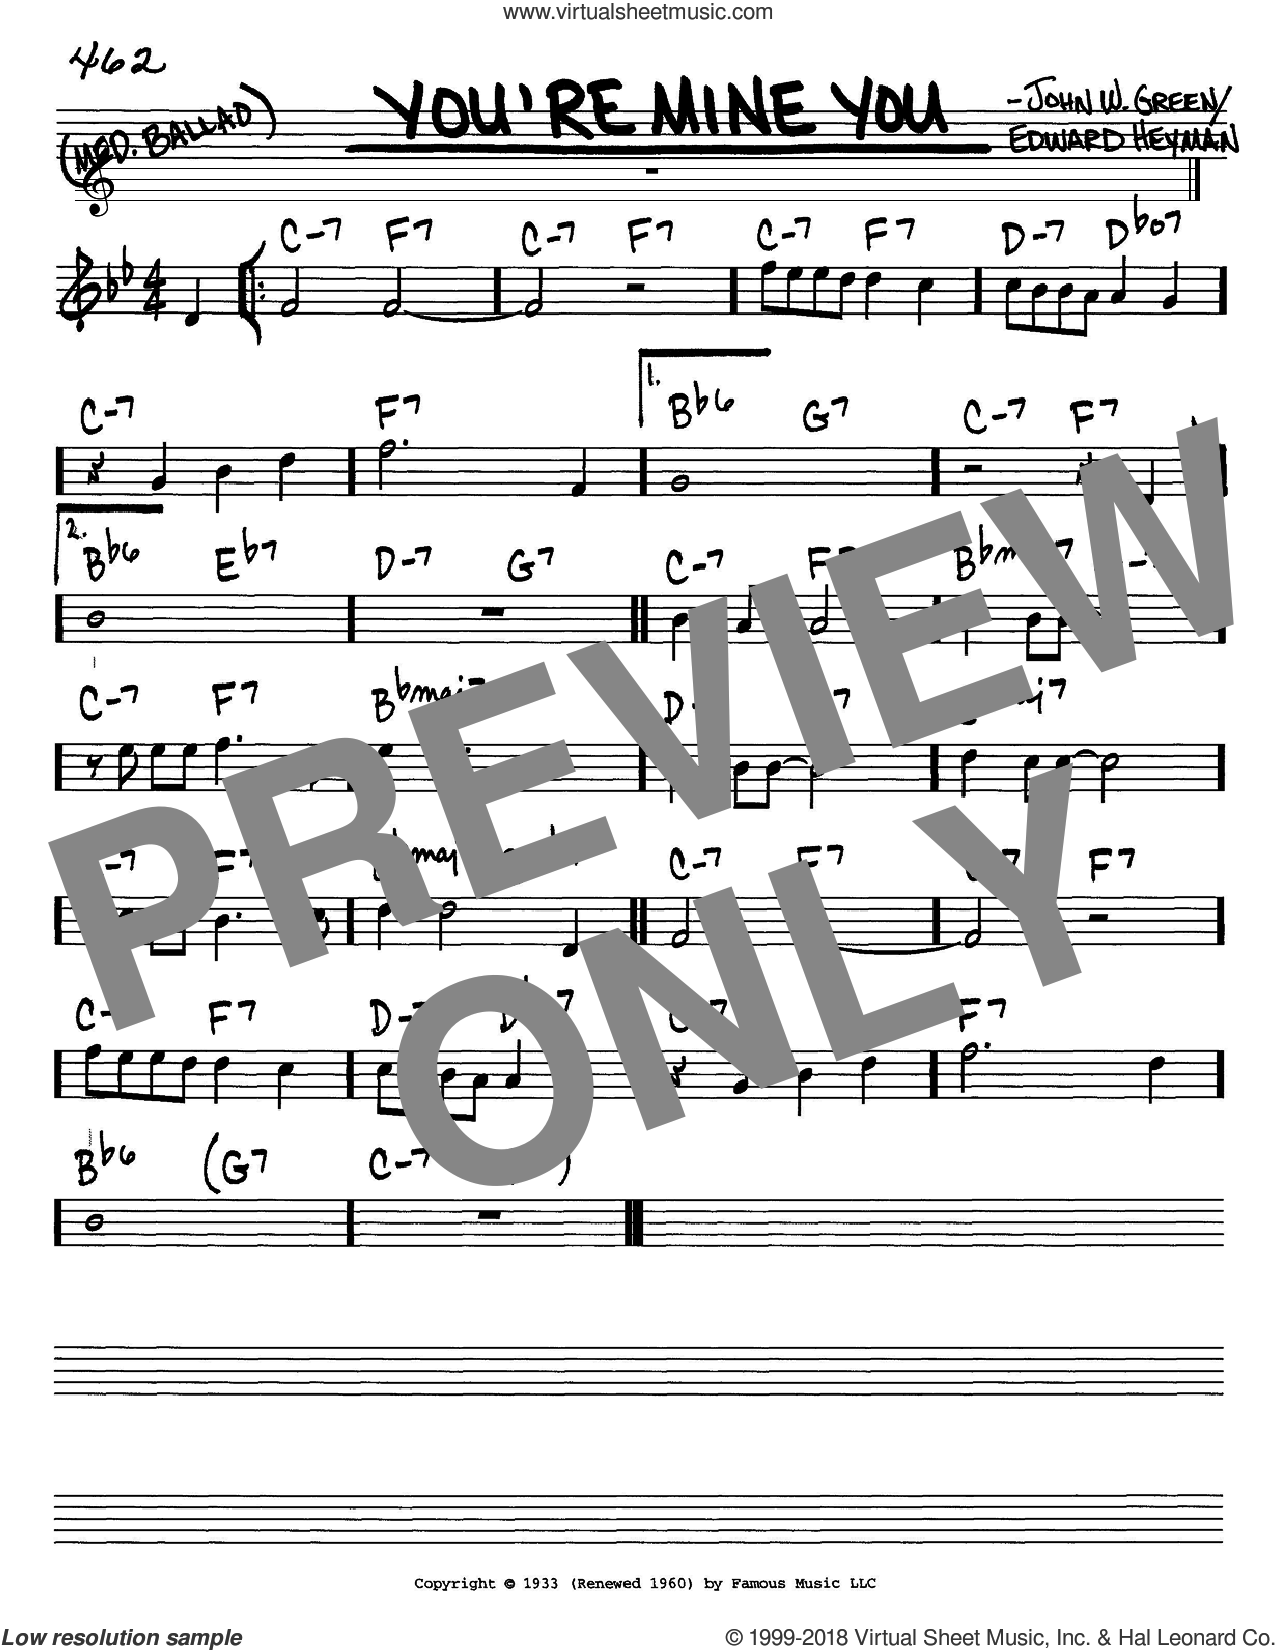 You're Mine You sheet music for voice and other instruments (C) by Edward Heyman and Johnny Green and Johnny Green. Score Image Preview.